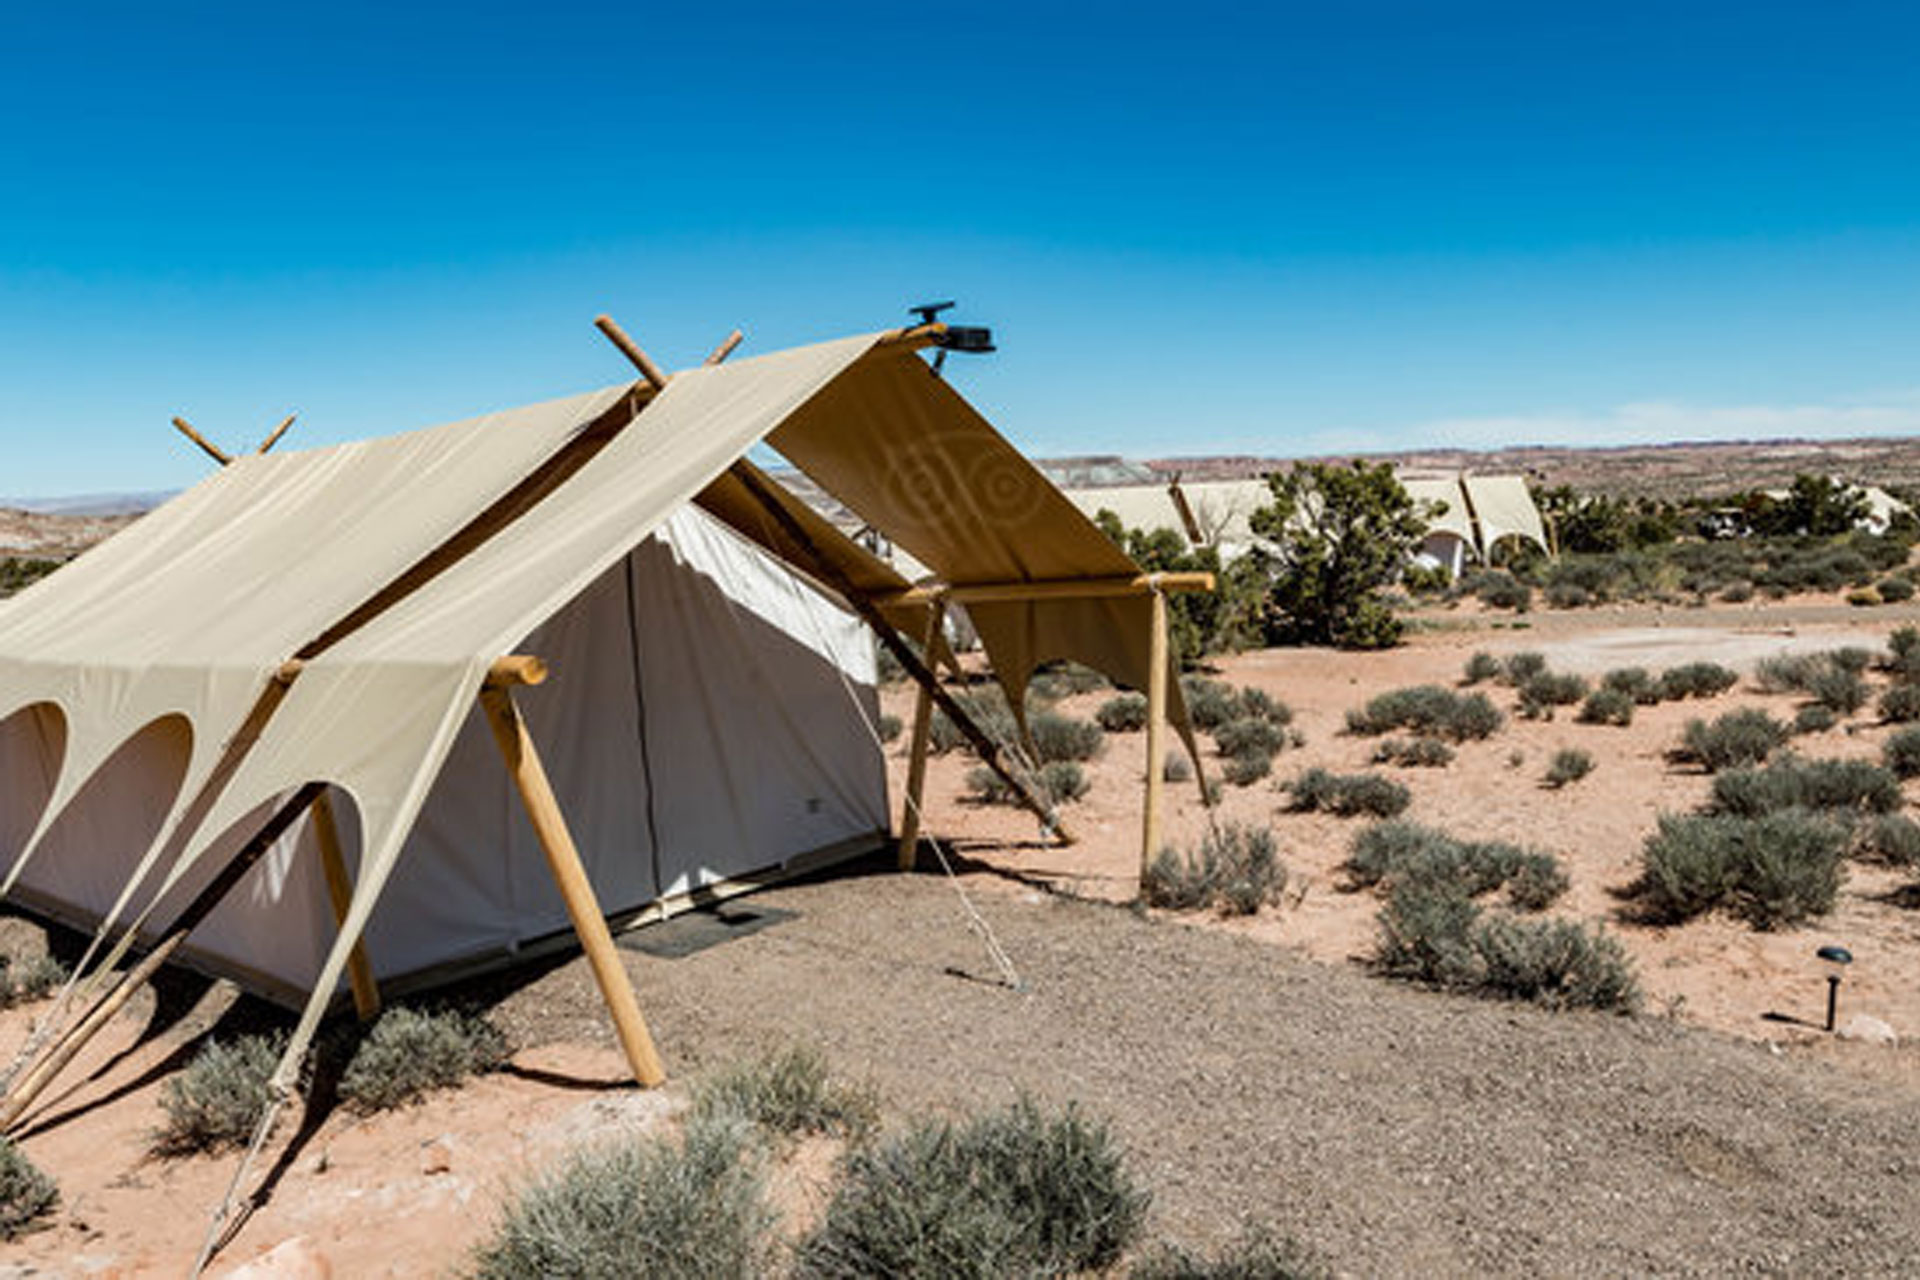 Tents at Under Canvas Moab; Courtesy of Under Canvas Moab